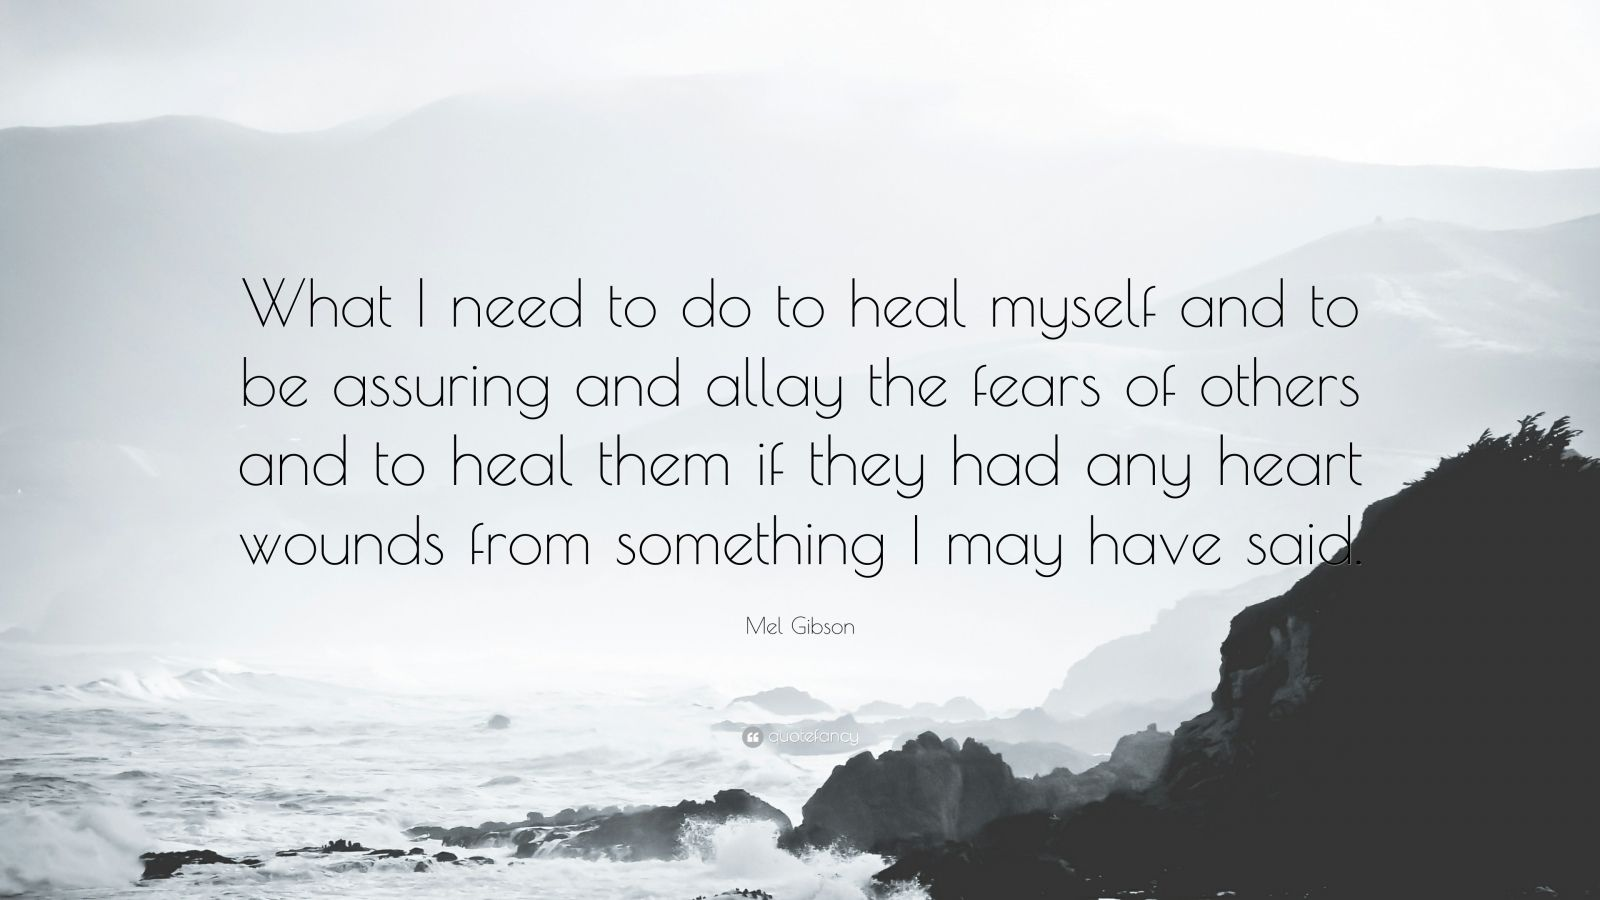 """Mel Gibson Quote: """"What I need to do to heal myself and to be assuring and allay the fears of others and to heal them if they had any heart wounds from something I may have said."""""""